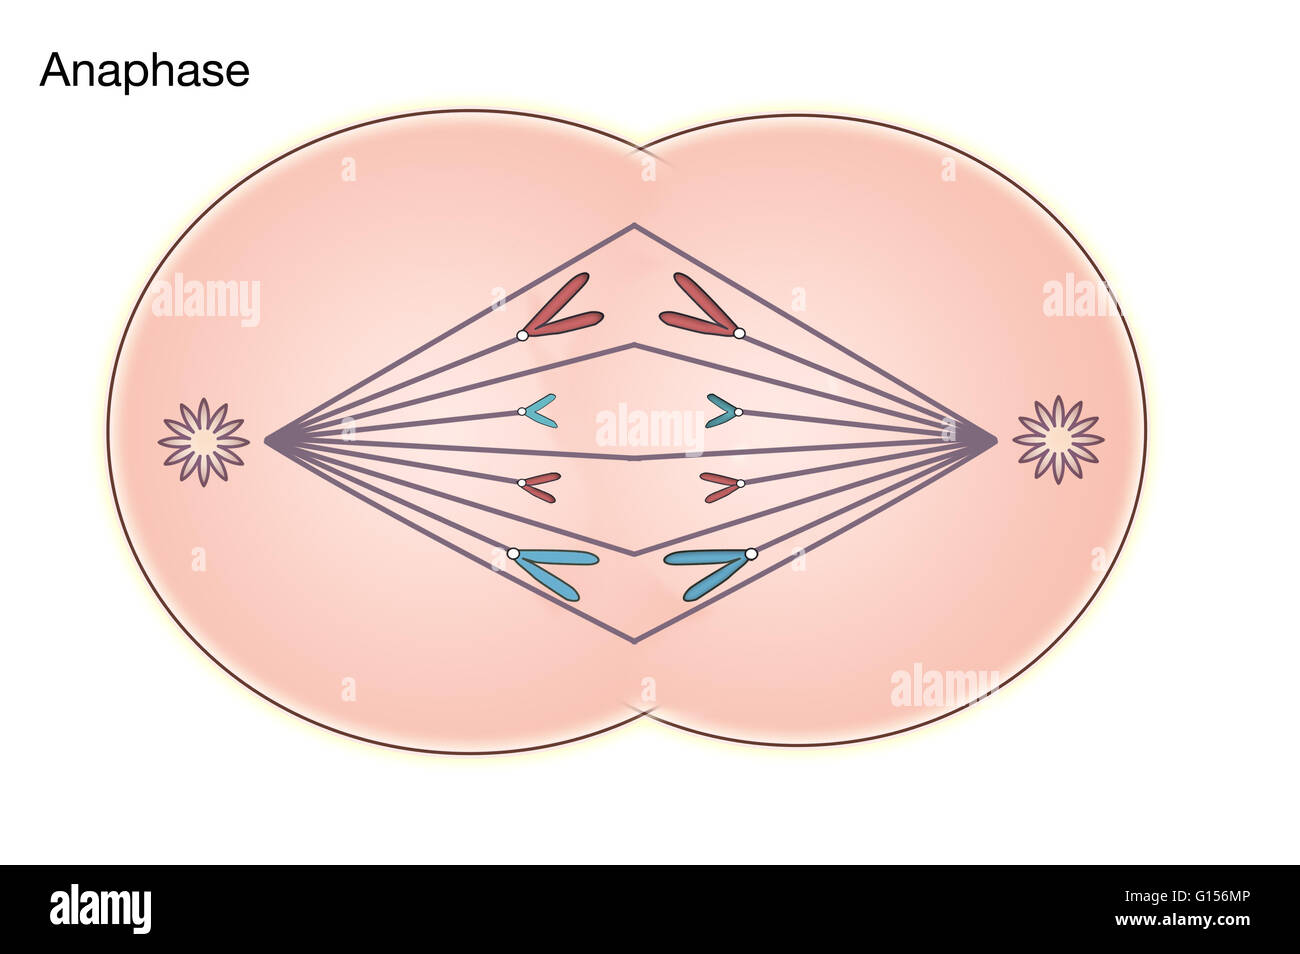 Diagram of anaphase of mitosis in an animal cell stock photo diagram of anaphase of mitosis in an animal cell ccuart Choice Image